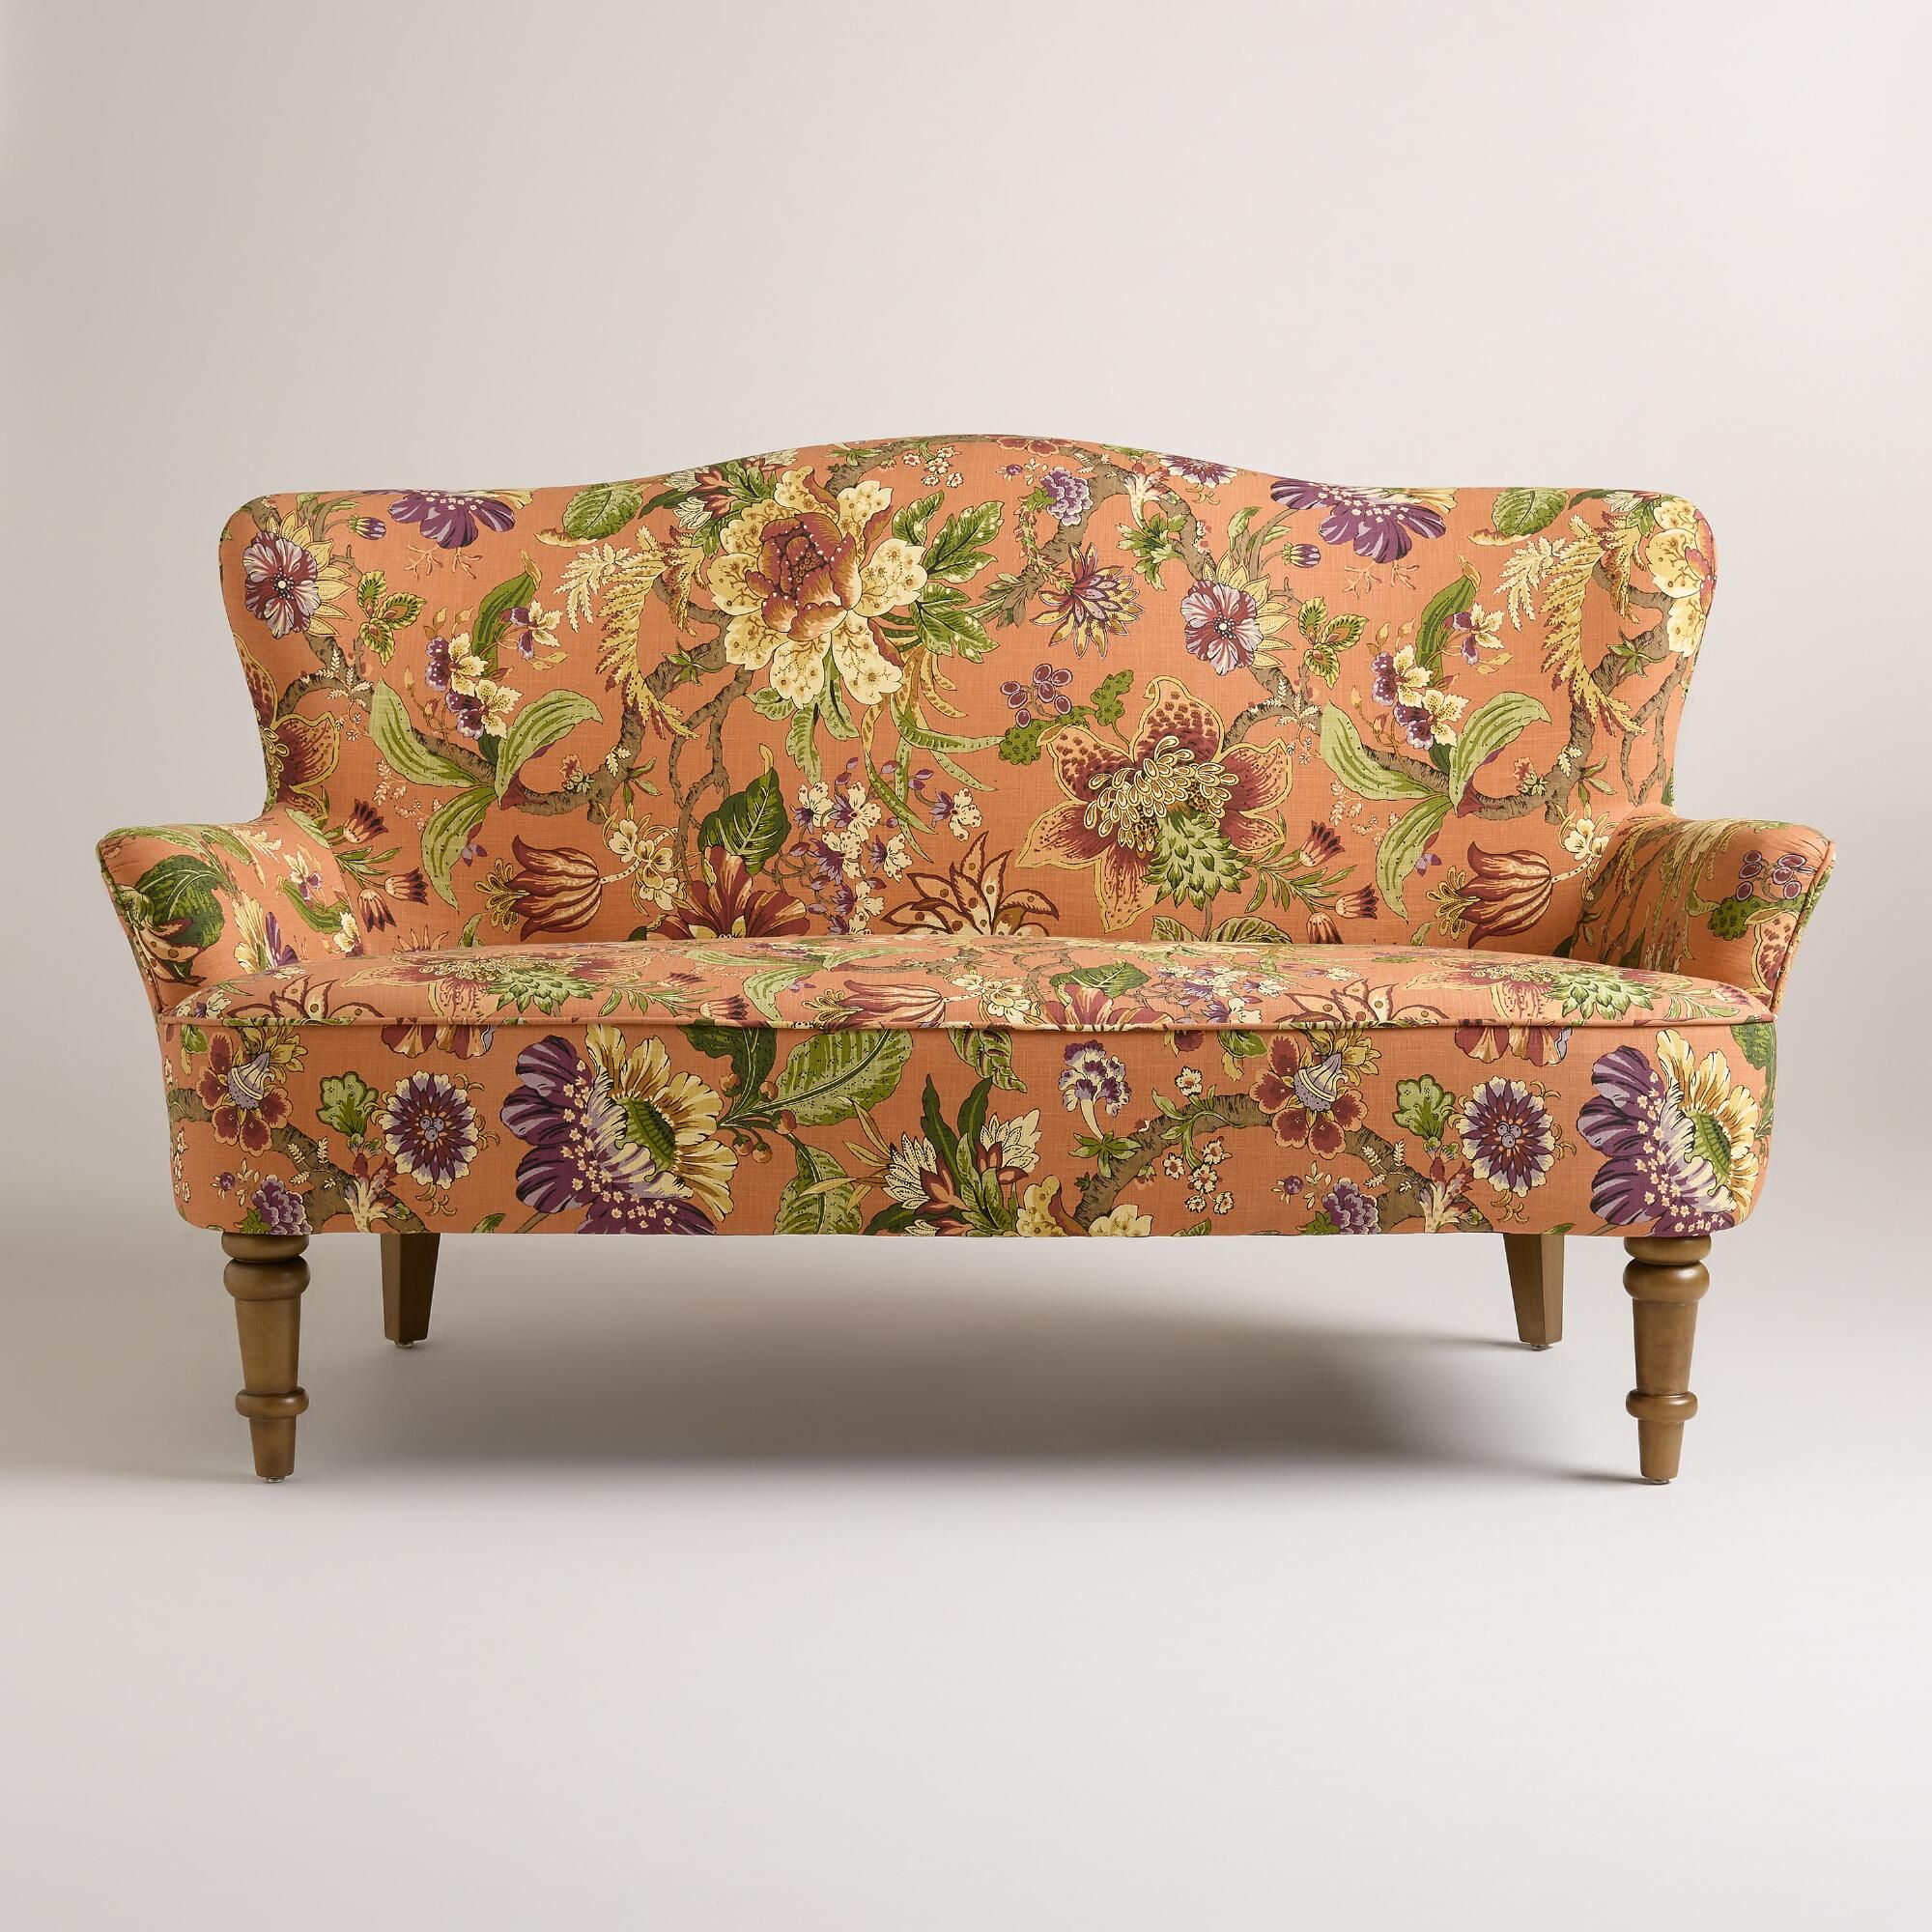 Ideal for small spaces our comfortable vintageinspired loveseat